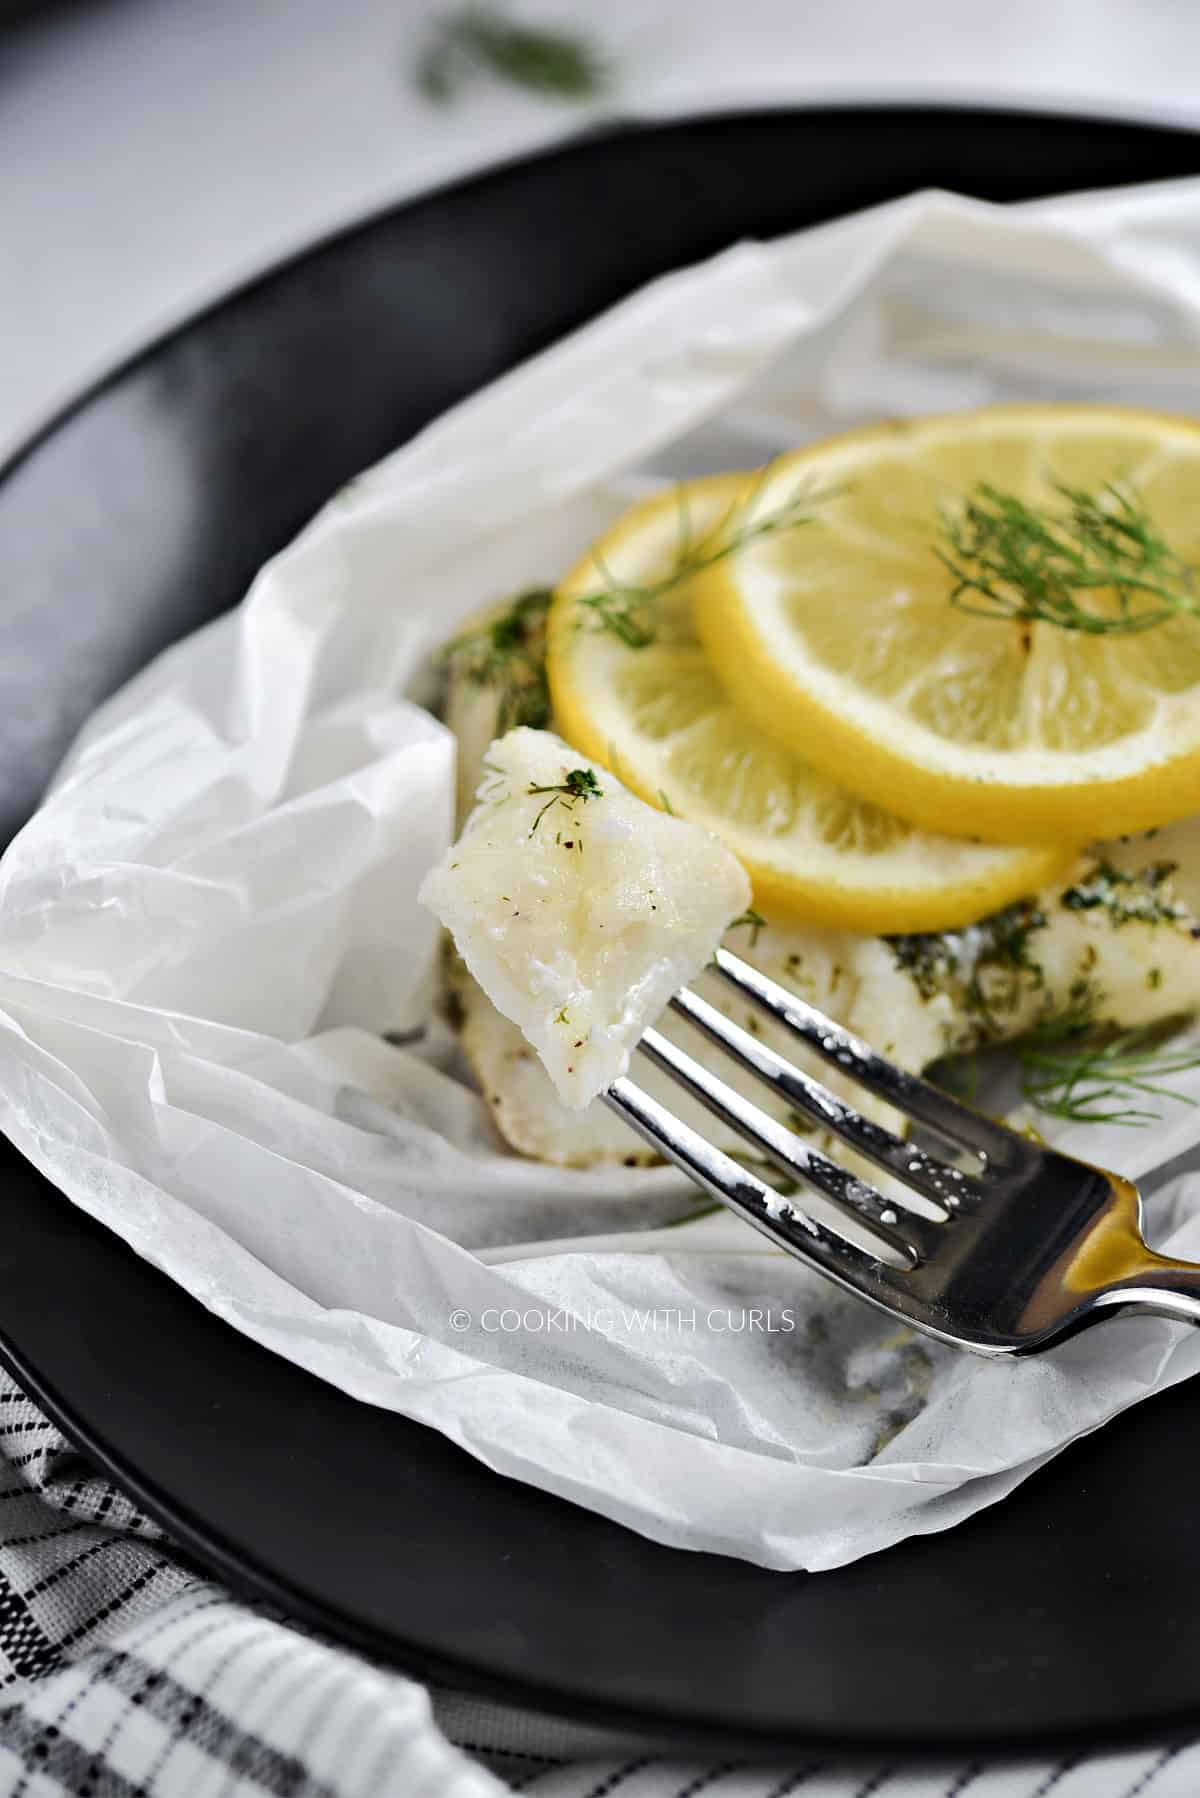 Flaky cod on a fork resting next to a lemon topped filet.